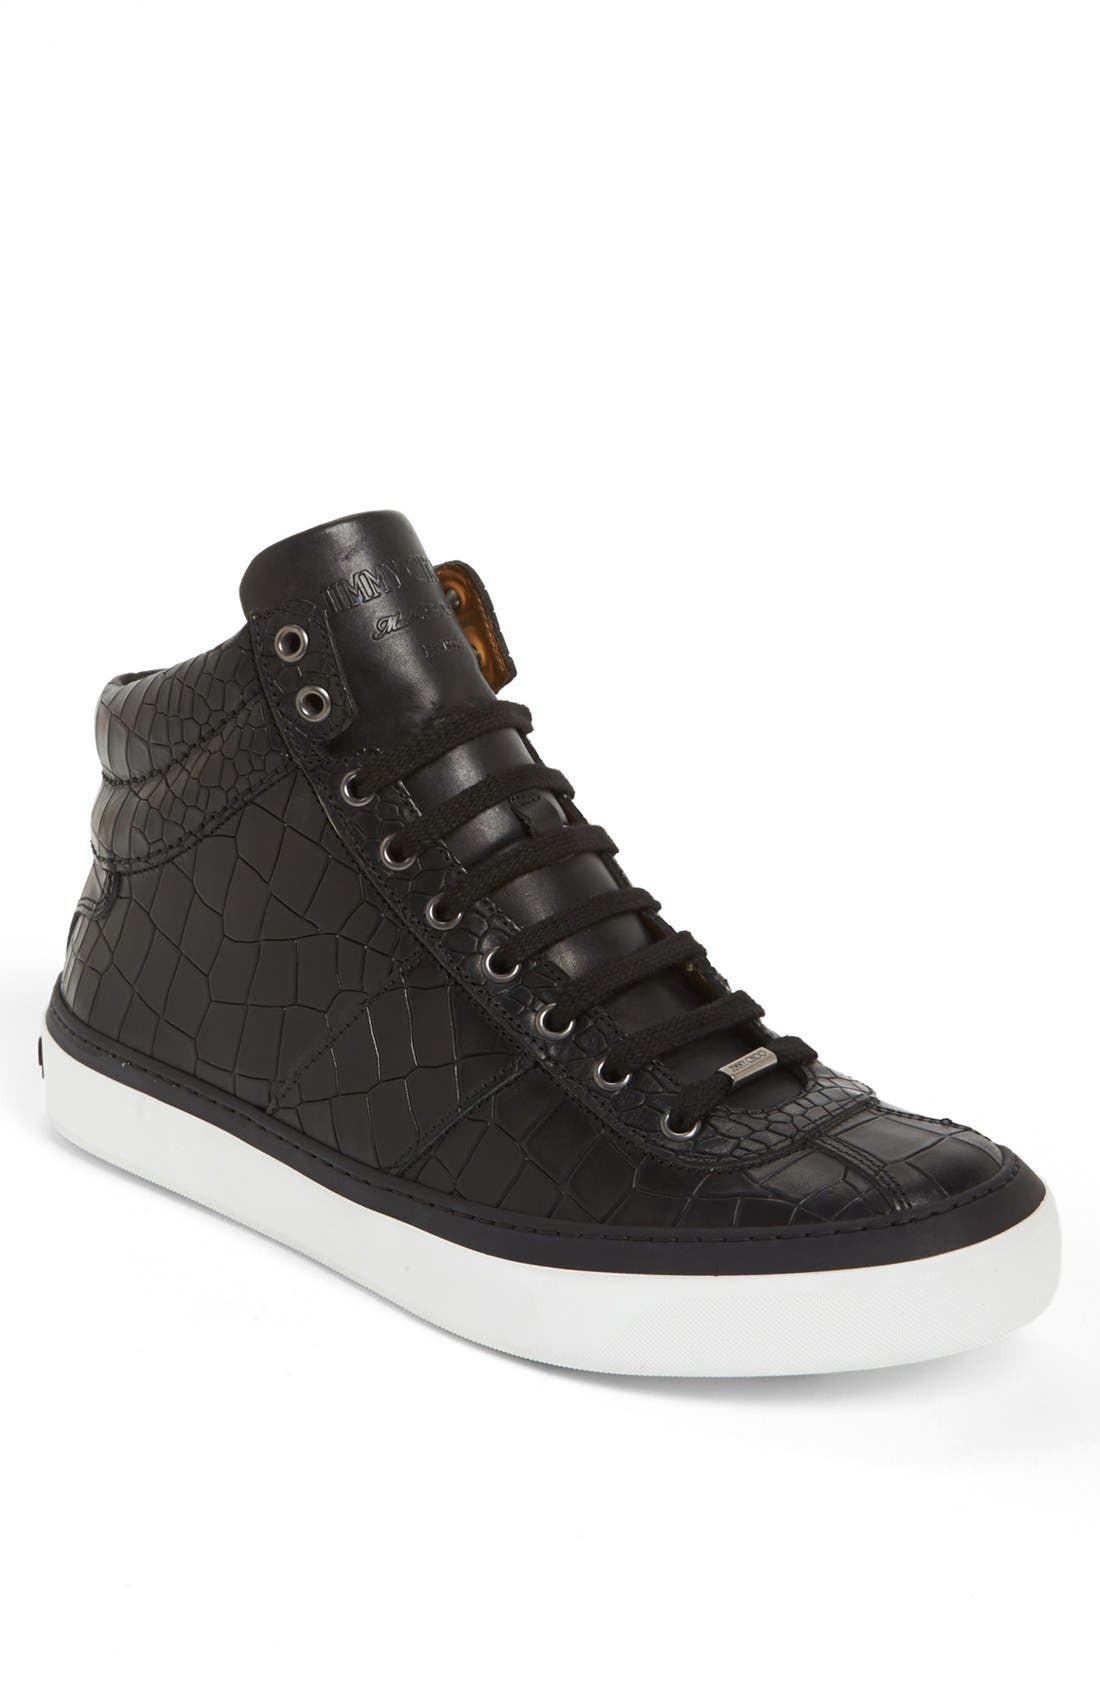 Belgravia High Top Sneaker,                             Main thumbnail 1, color,                             Black